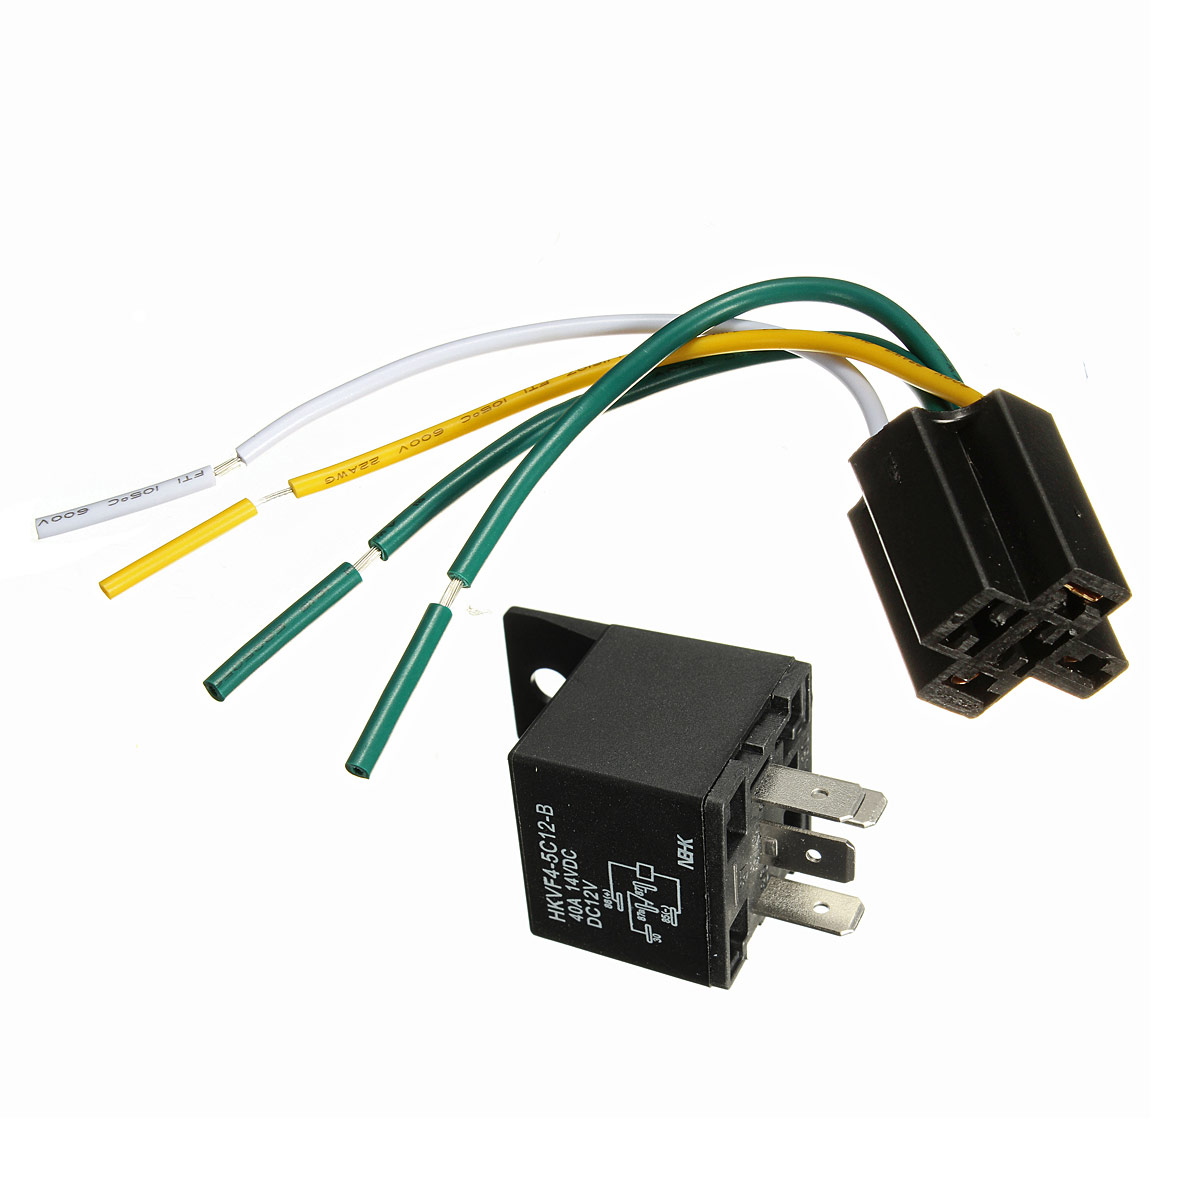 A423CF13CBCF53CEC9B203C63323CDC913CE4DC7F5CA car auto dc 12v volt 30 40a automotive 4 pin 4 wire relay & socket